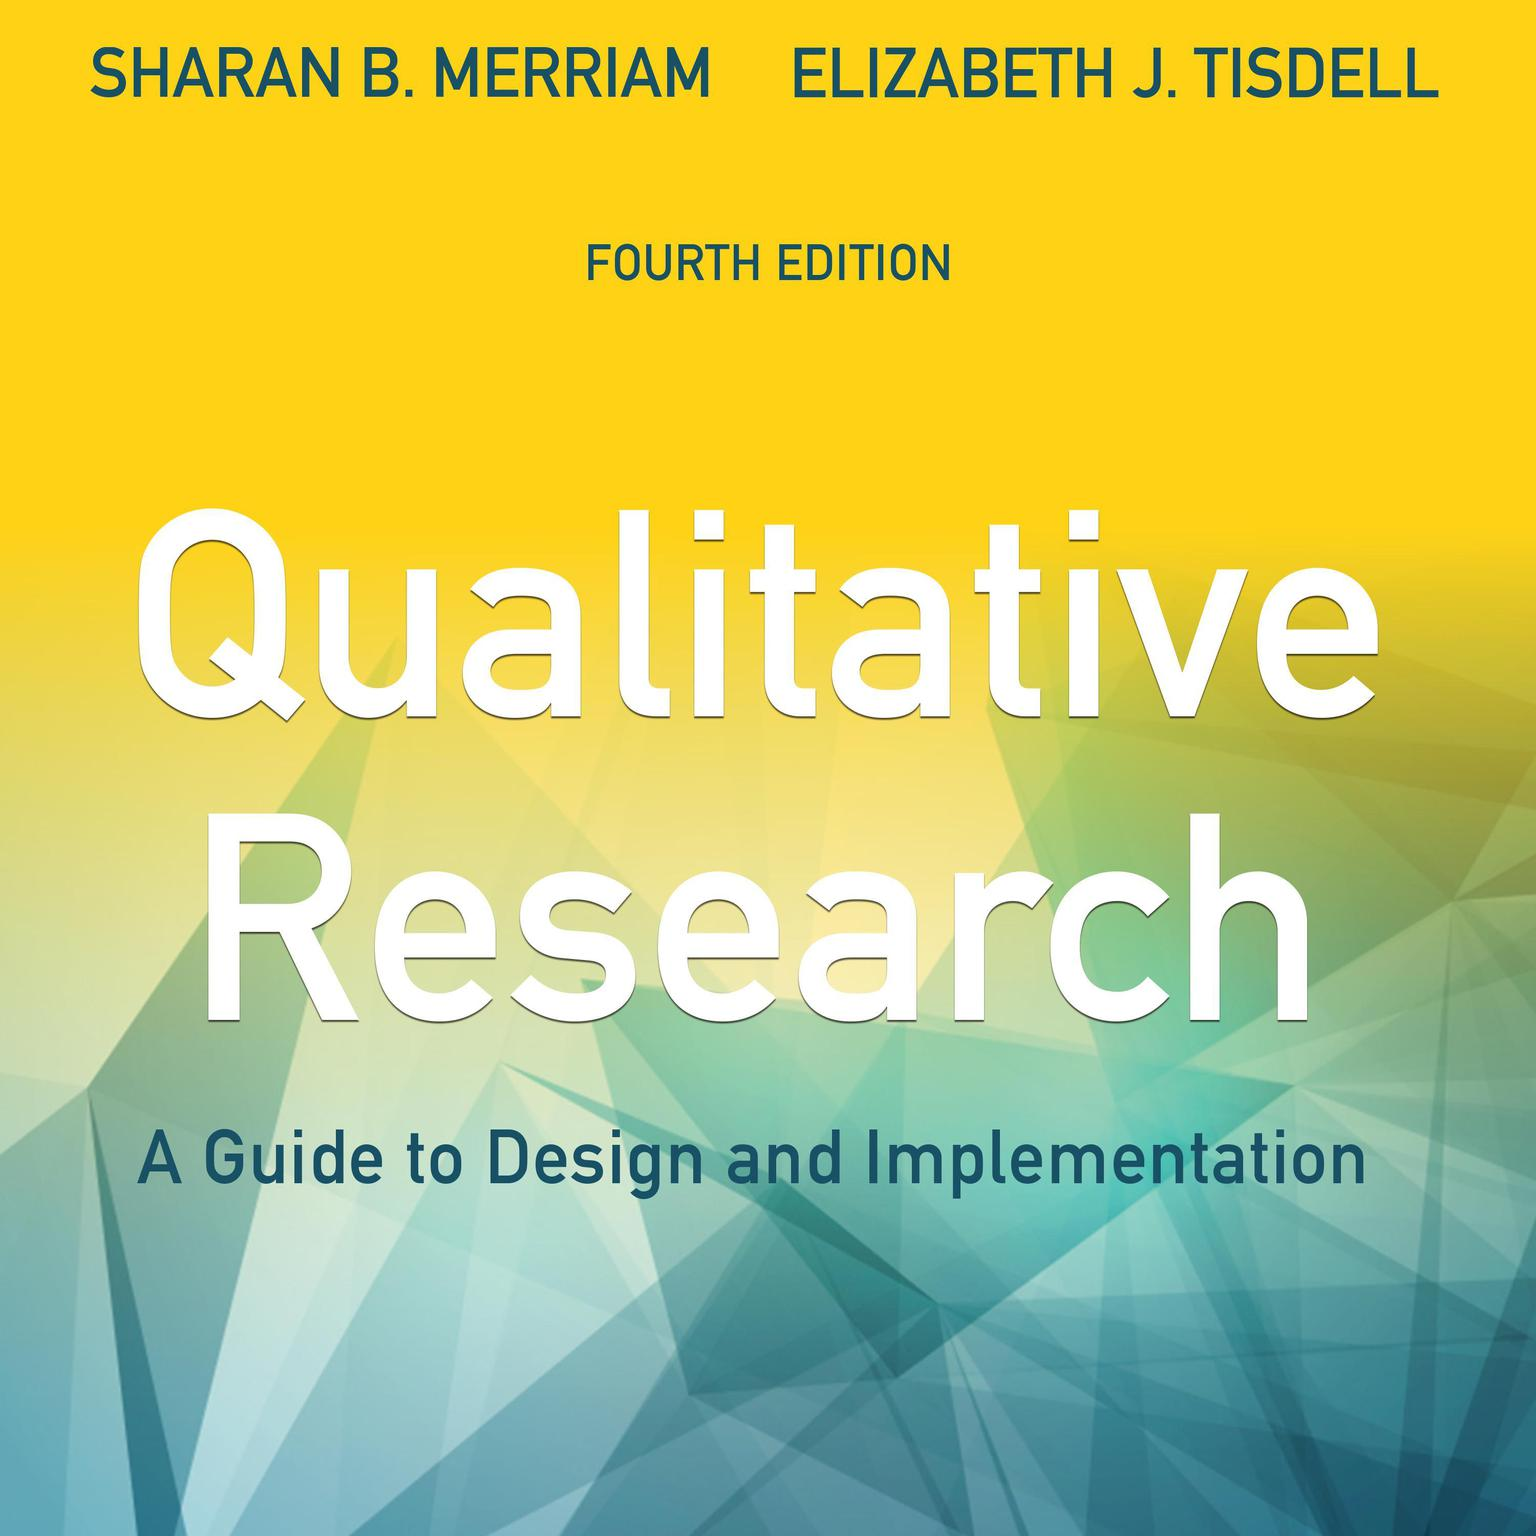 Qualitative Research: A Guide to Design and Implementation, 4th Edition Audiobook, by Sharan B. Merriam